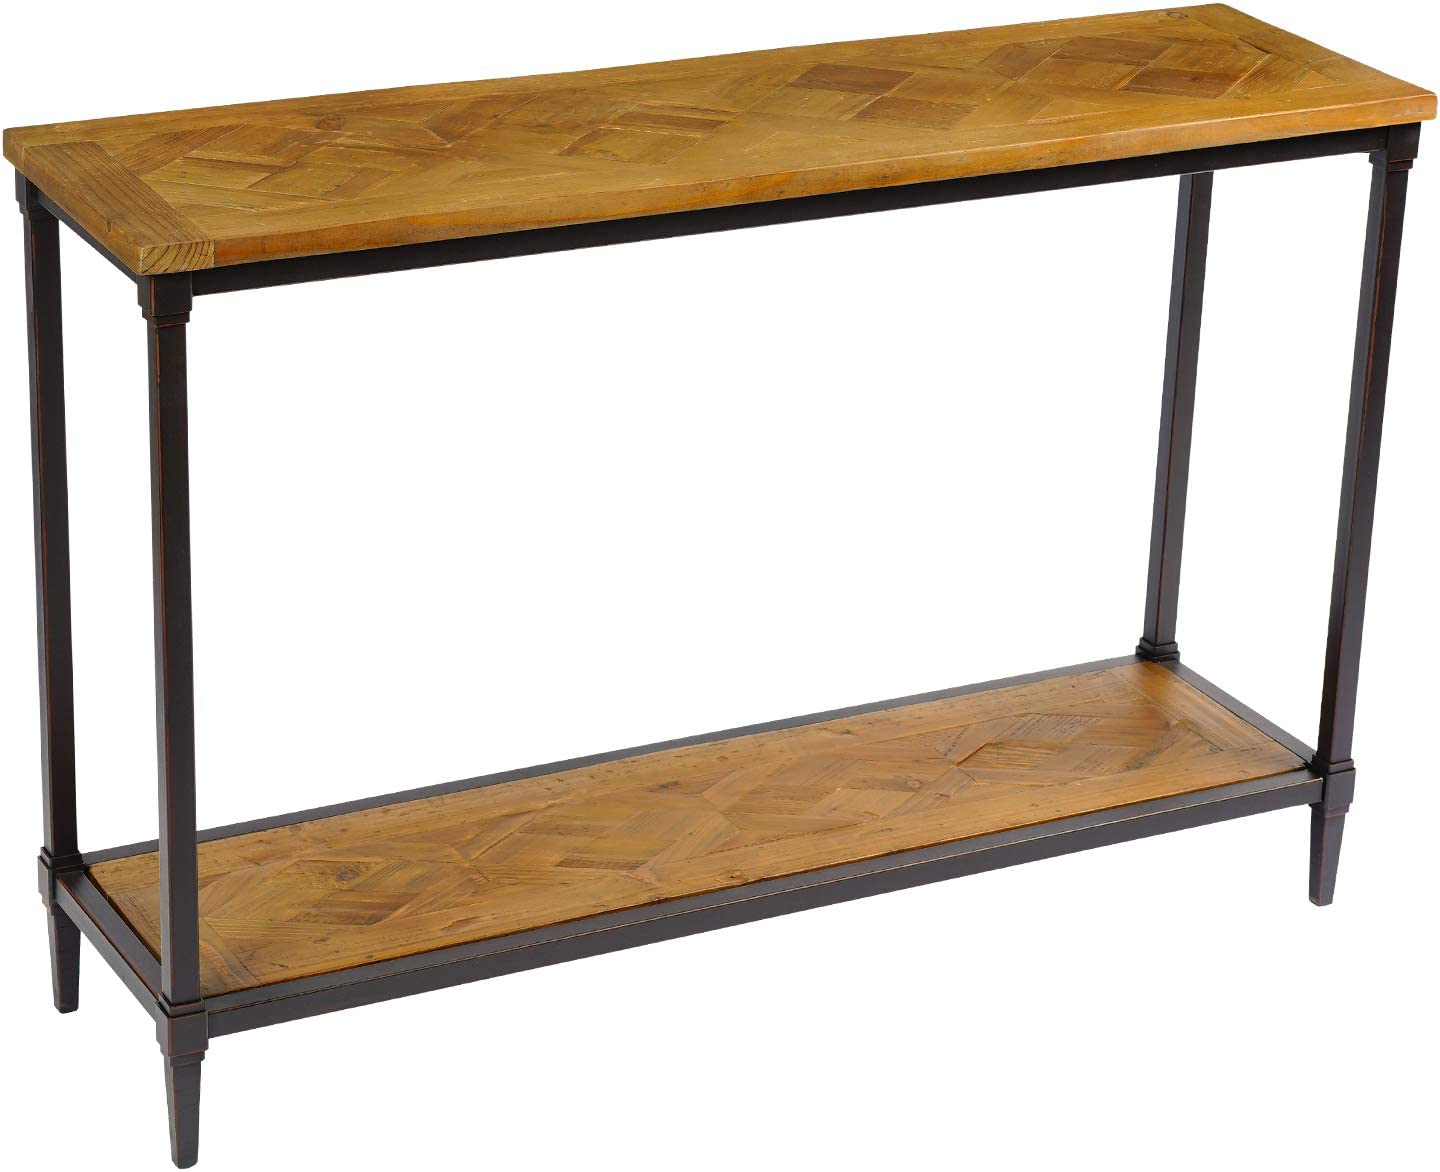 Solid Wood Farmhouse Console Table-Rustic Entryway Table - Hall Way Table with Storage - 2 Tier Industrial Foyer Tables - Reclaimed Wood with Splicing Pattern, T-003